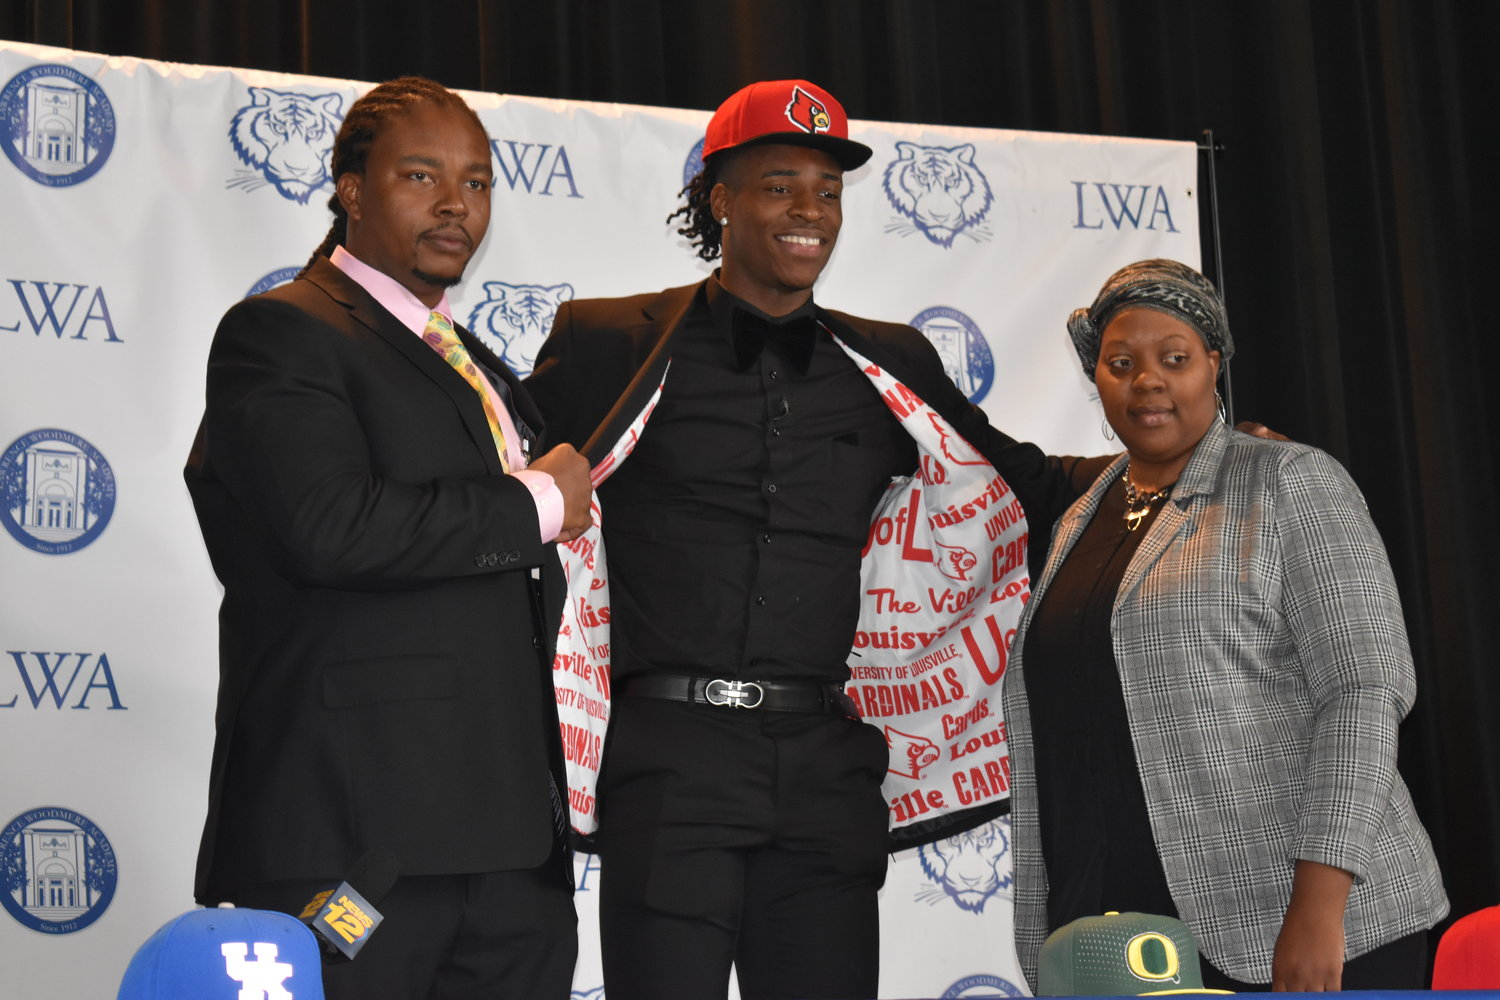 Lawrence Woodmere Academy senior Aidan Igiehon announced his decision to play for the Louisville Cardinals next year with his Uncle Solomon Igiehon and Aunt Zenovia Igiehon.